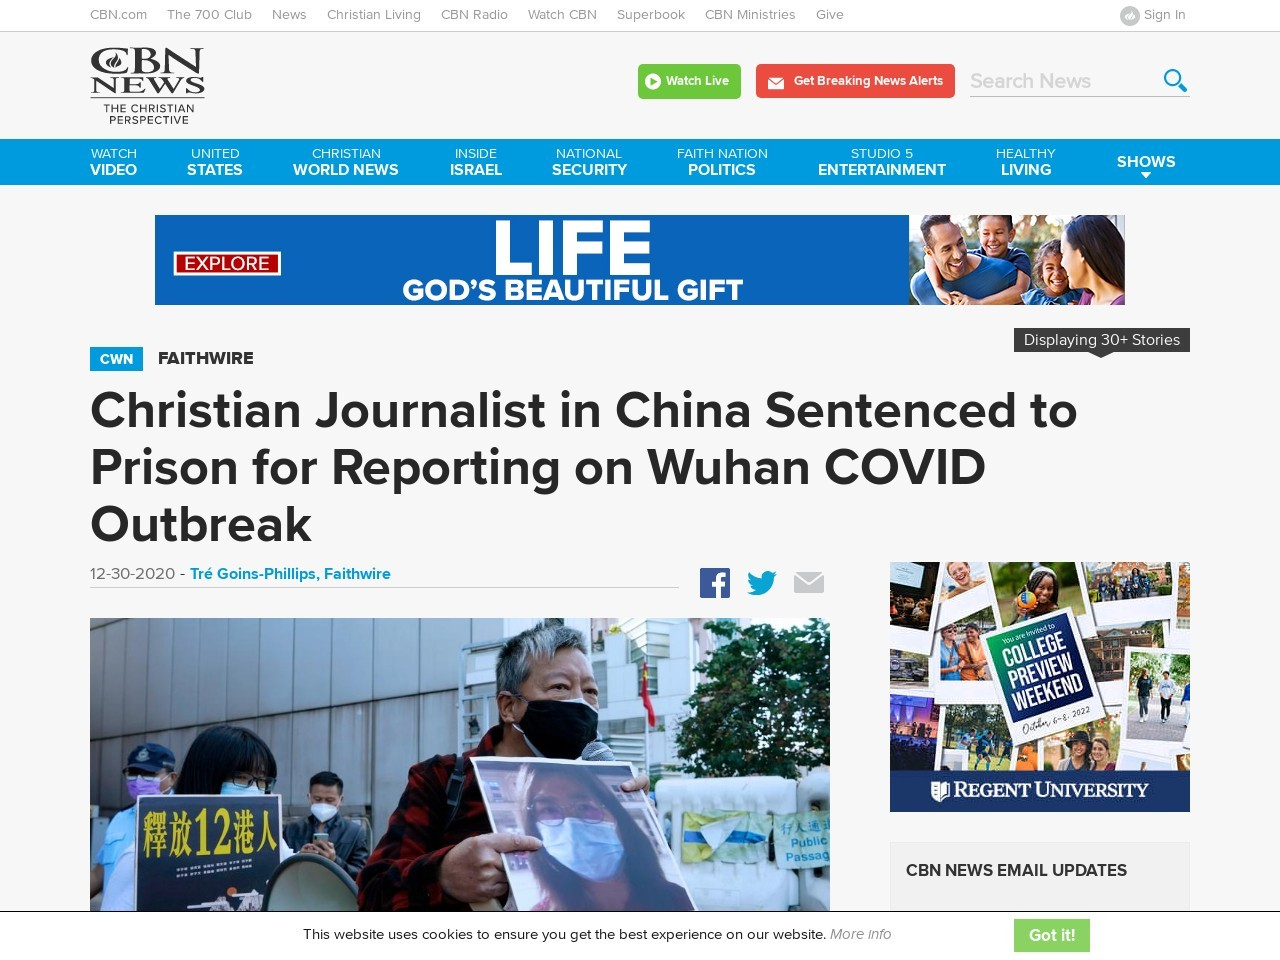 Christian Journalist in China Sentenced to Prison for Reporting on Wuhan COVID Outbreak